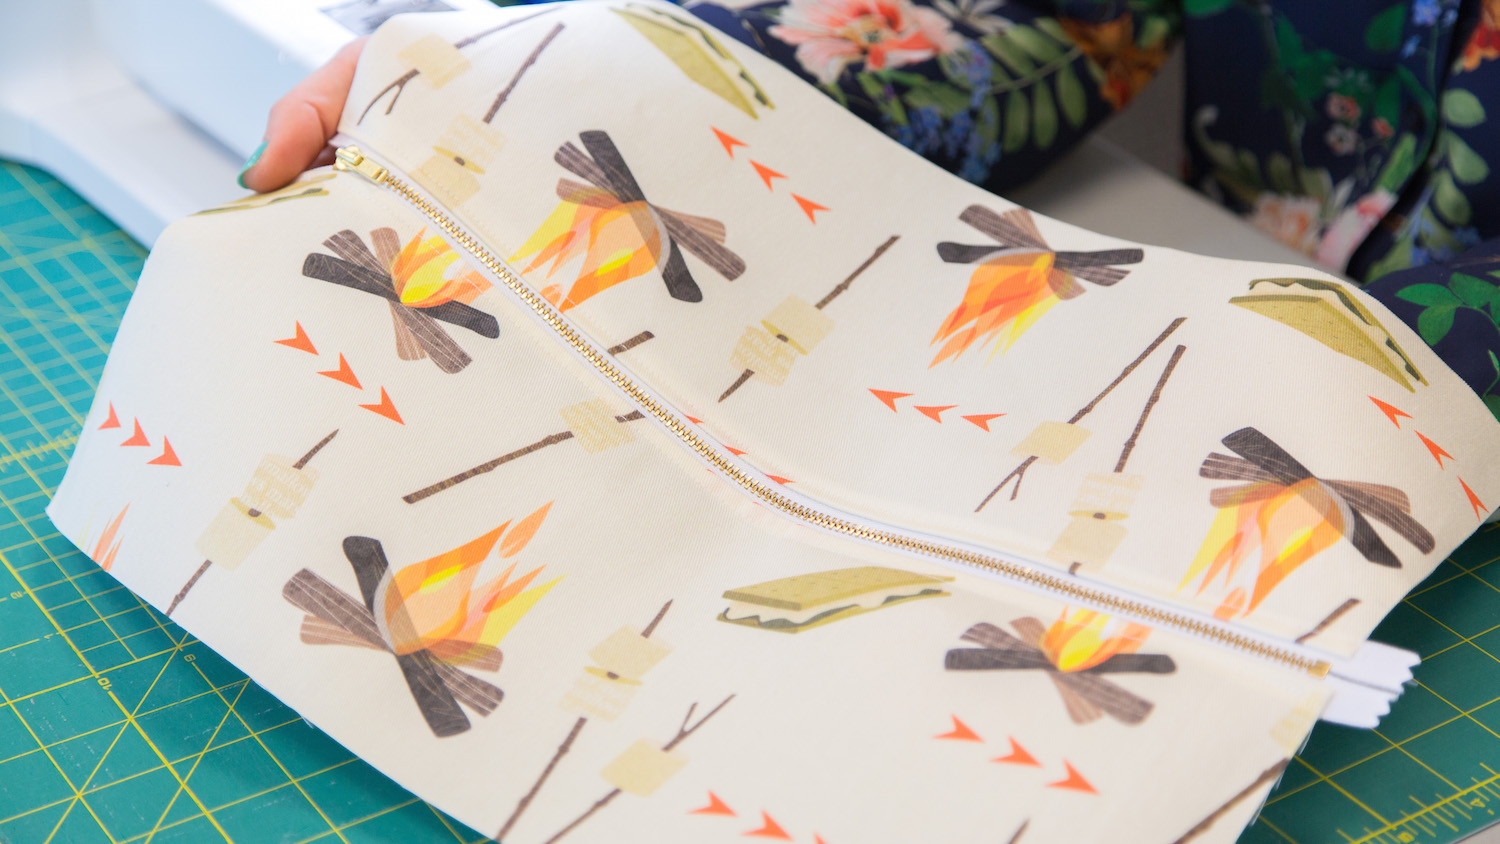 Campfire Craft: Laminated Zipper Pouch for Roasting Sticks | Spoonflower Blog